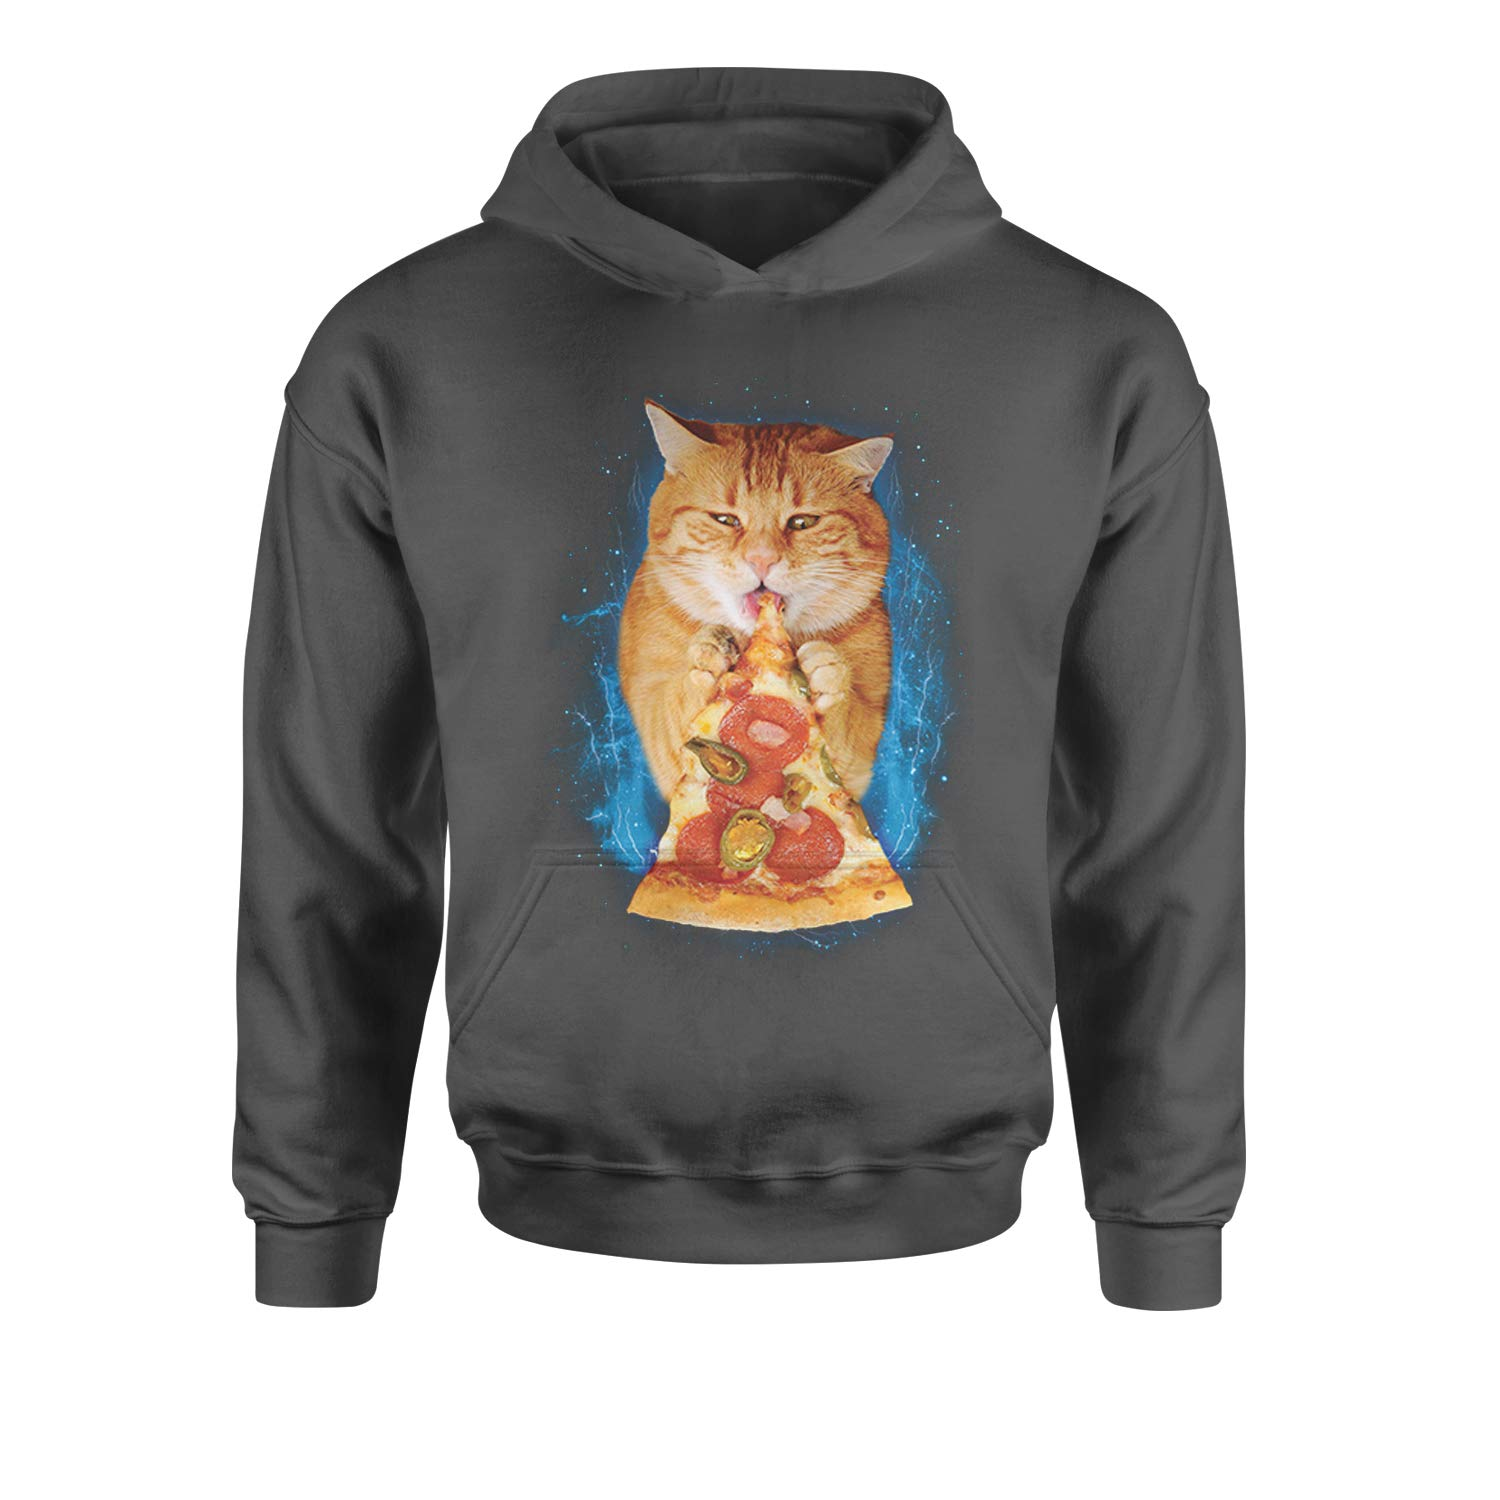 Expression Tees Cat Eating Pizza Youth-Sized Hoodie